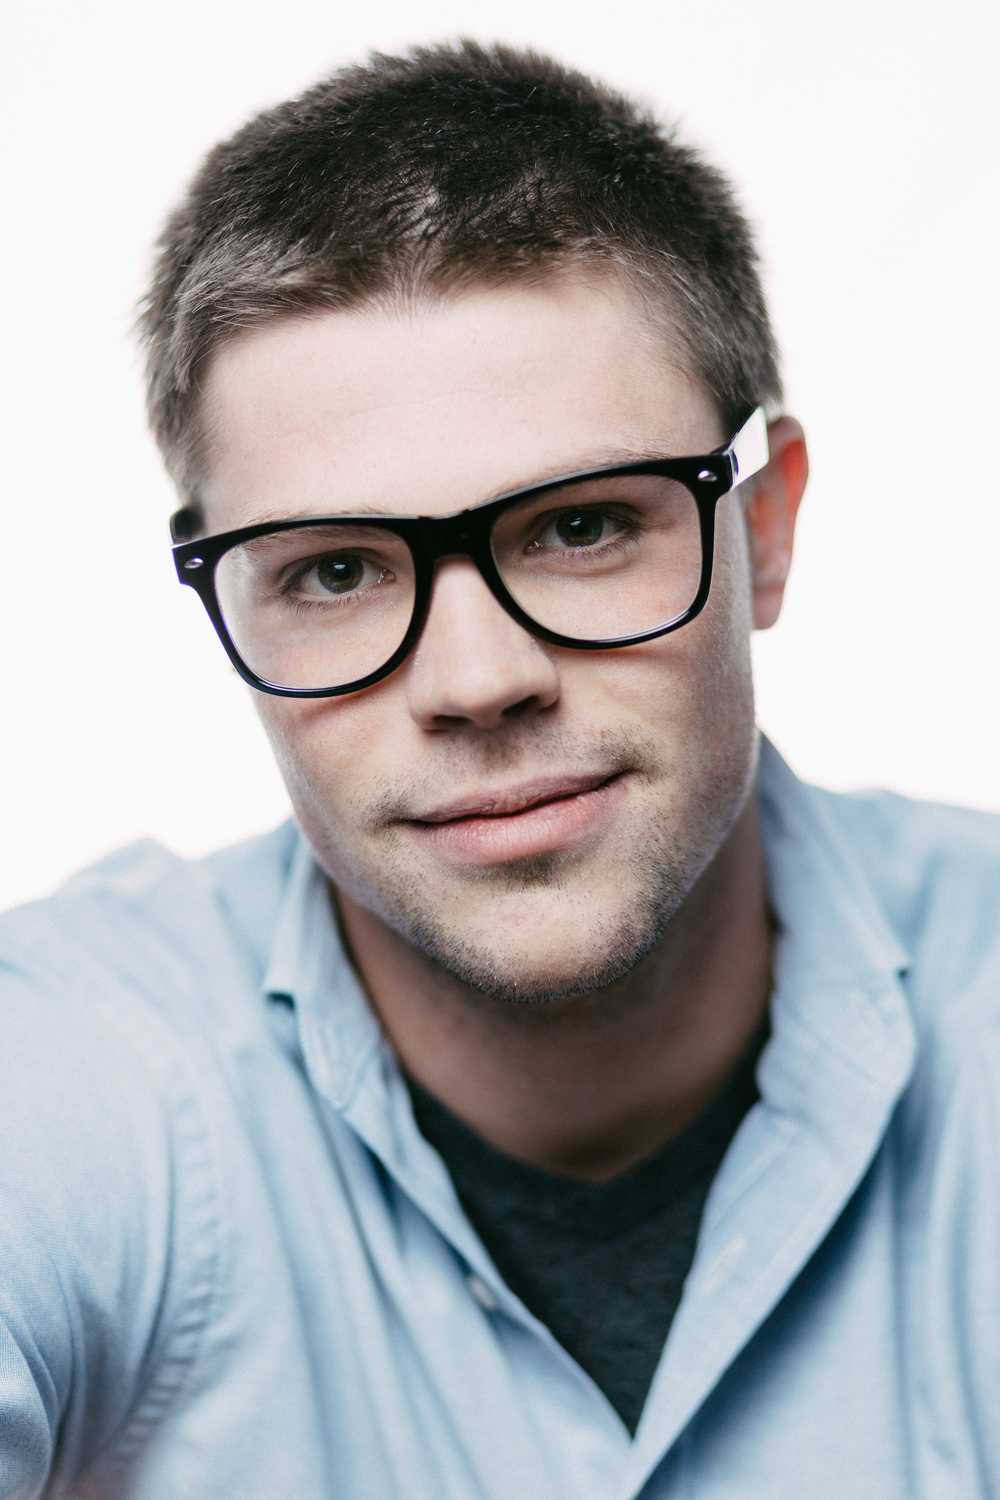 Rob Ankarlo Glasses Headshot.jpg